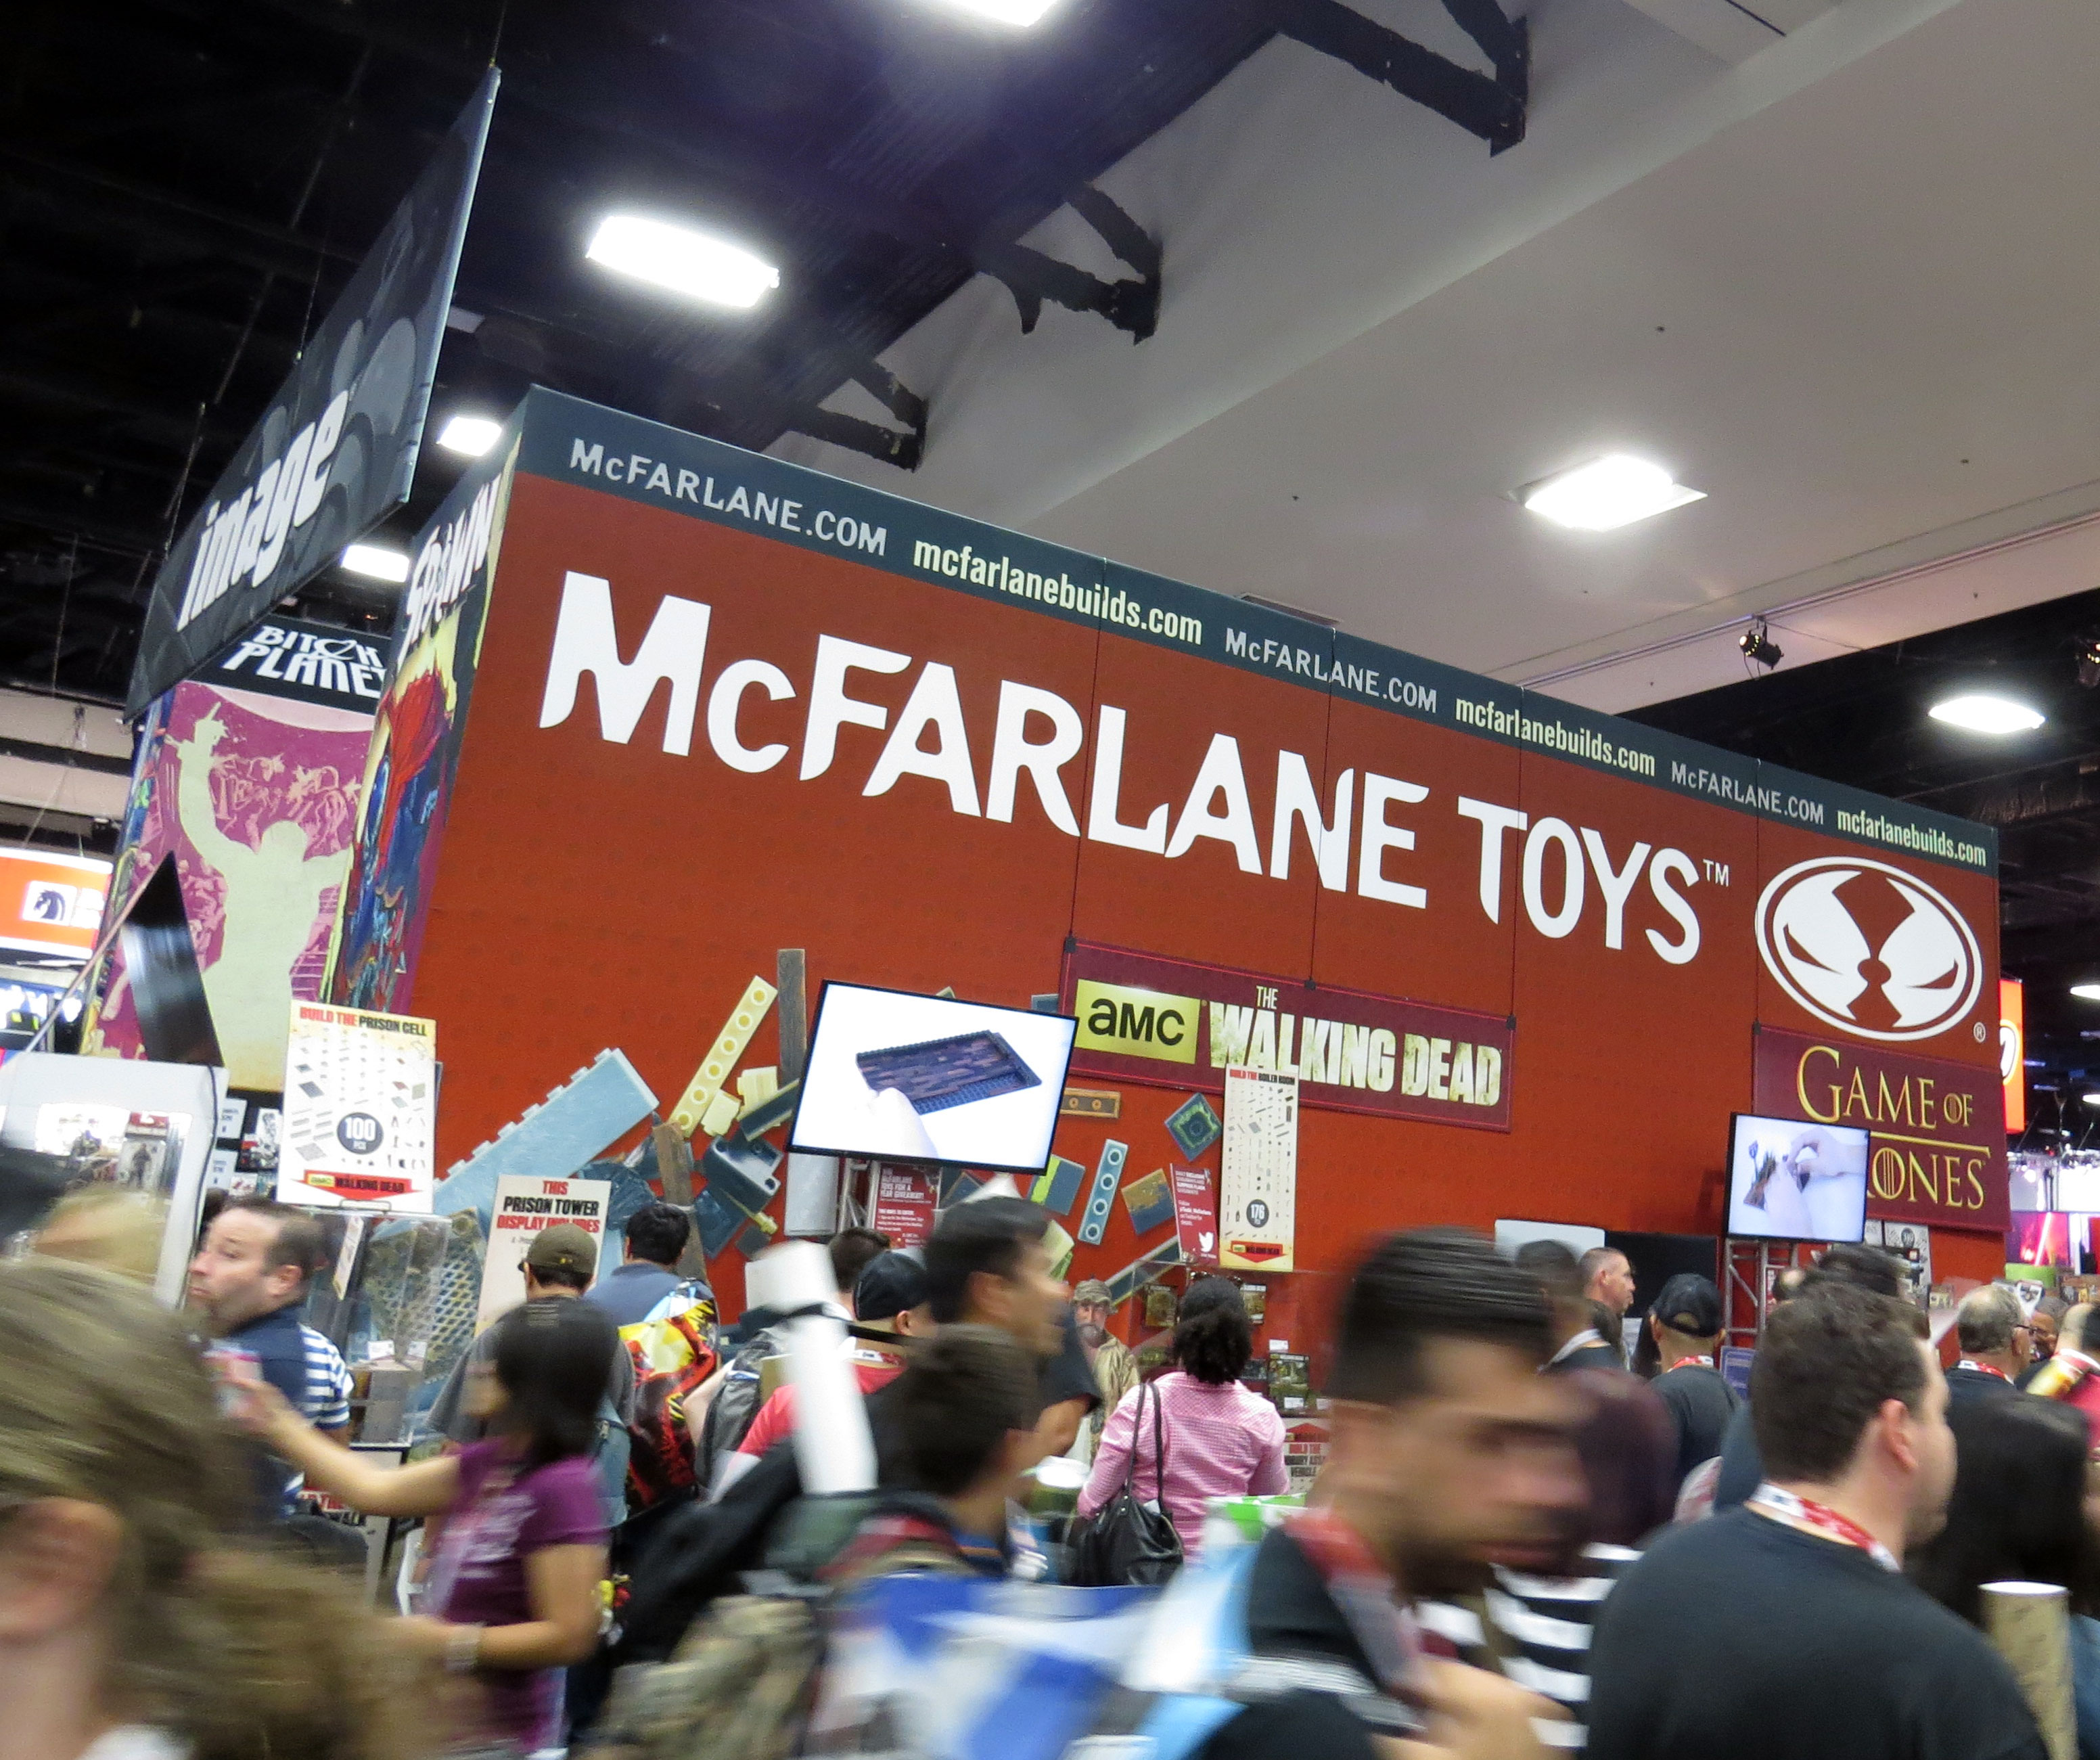 sdcc2015 07 09 mcfarlane toys booth 09 - SDCC2015: A Photo Gallery Of McFarlane's Walking Dead Figures